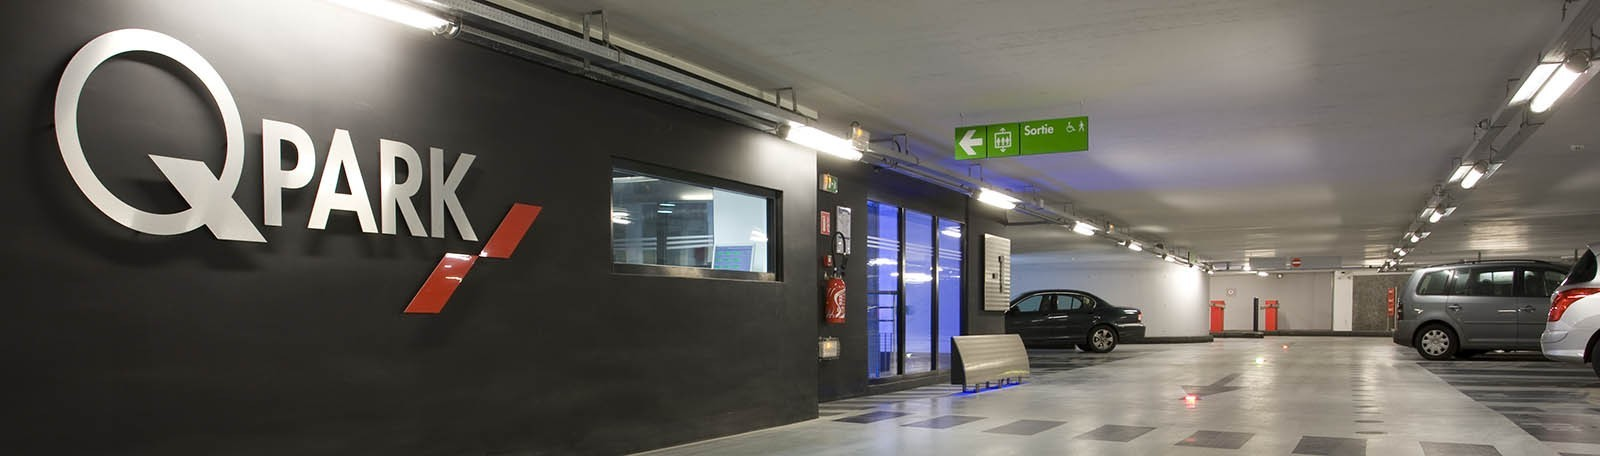 Parking Stade de France low cost - Parkeren in Saint-Denis | Q-Park